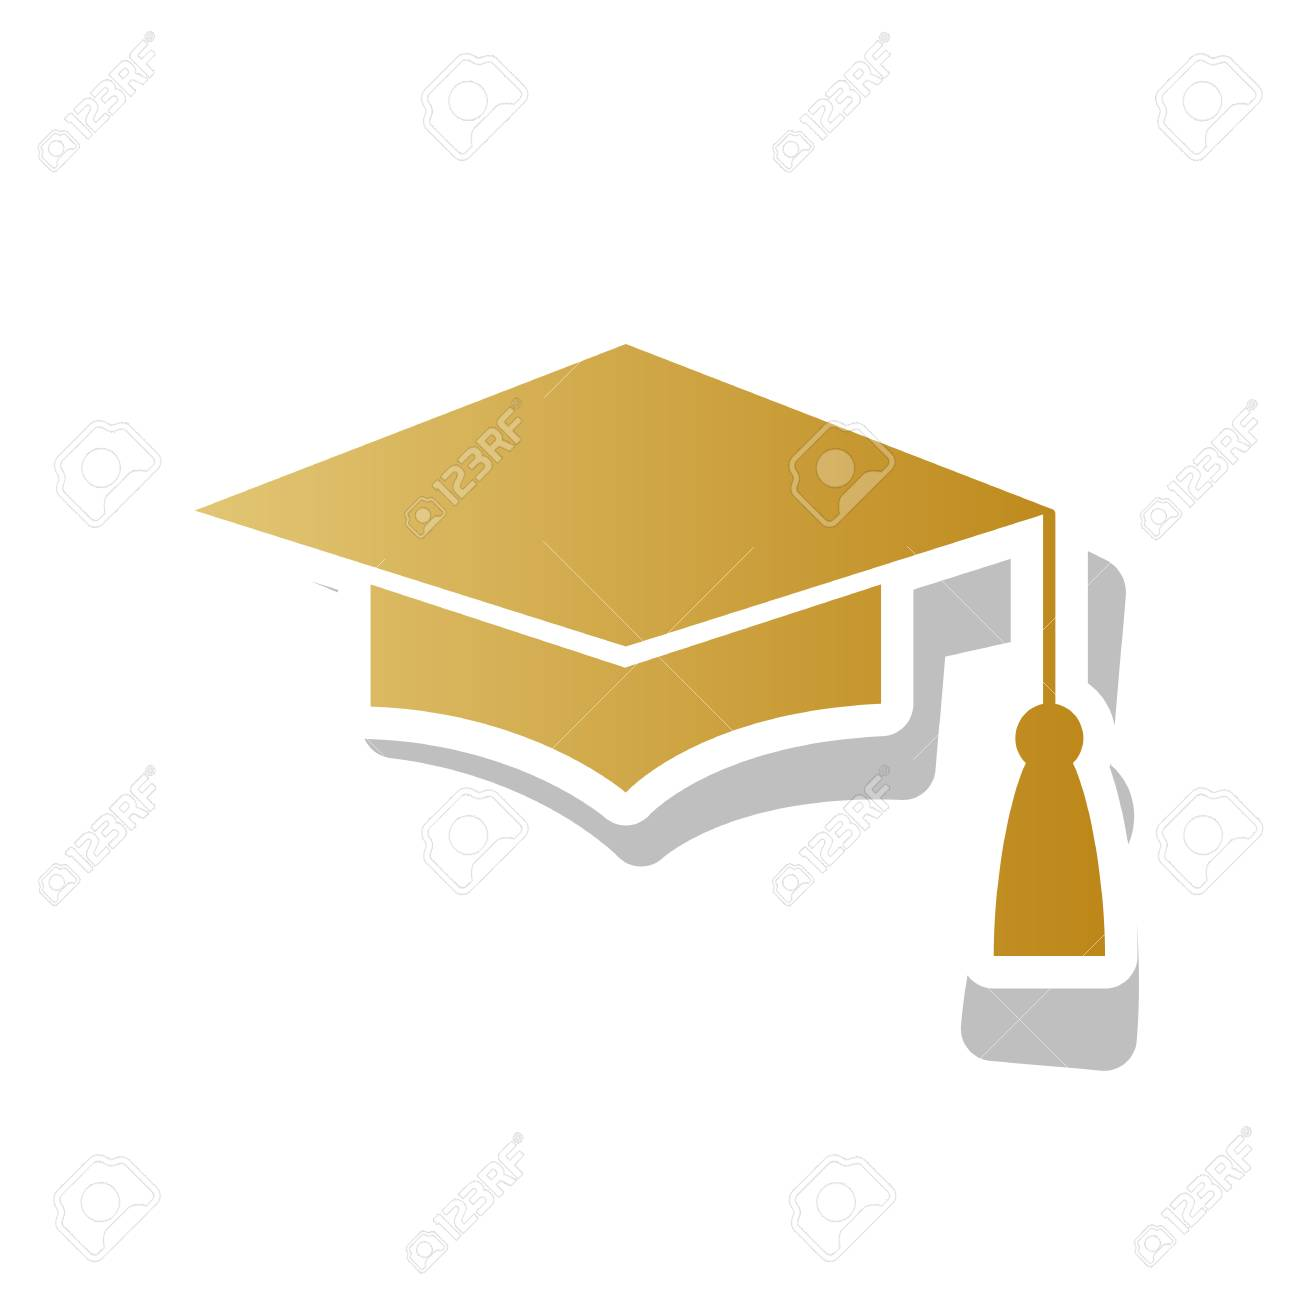 Mortar Board Or Graduation Cap Education Symbol Vector Golden